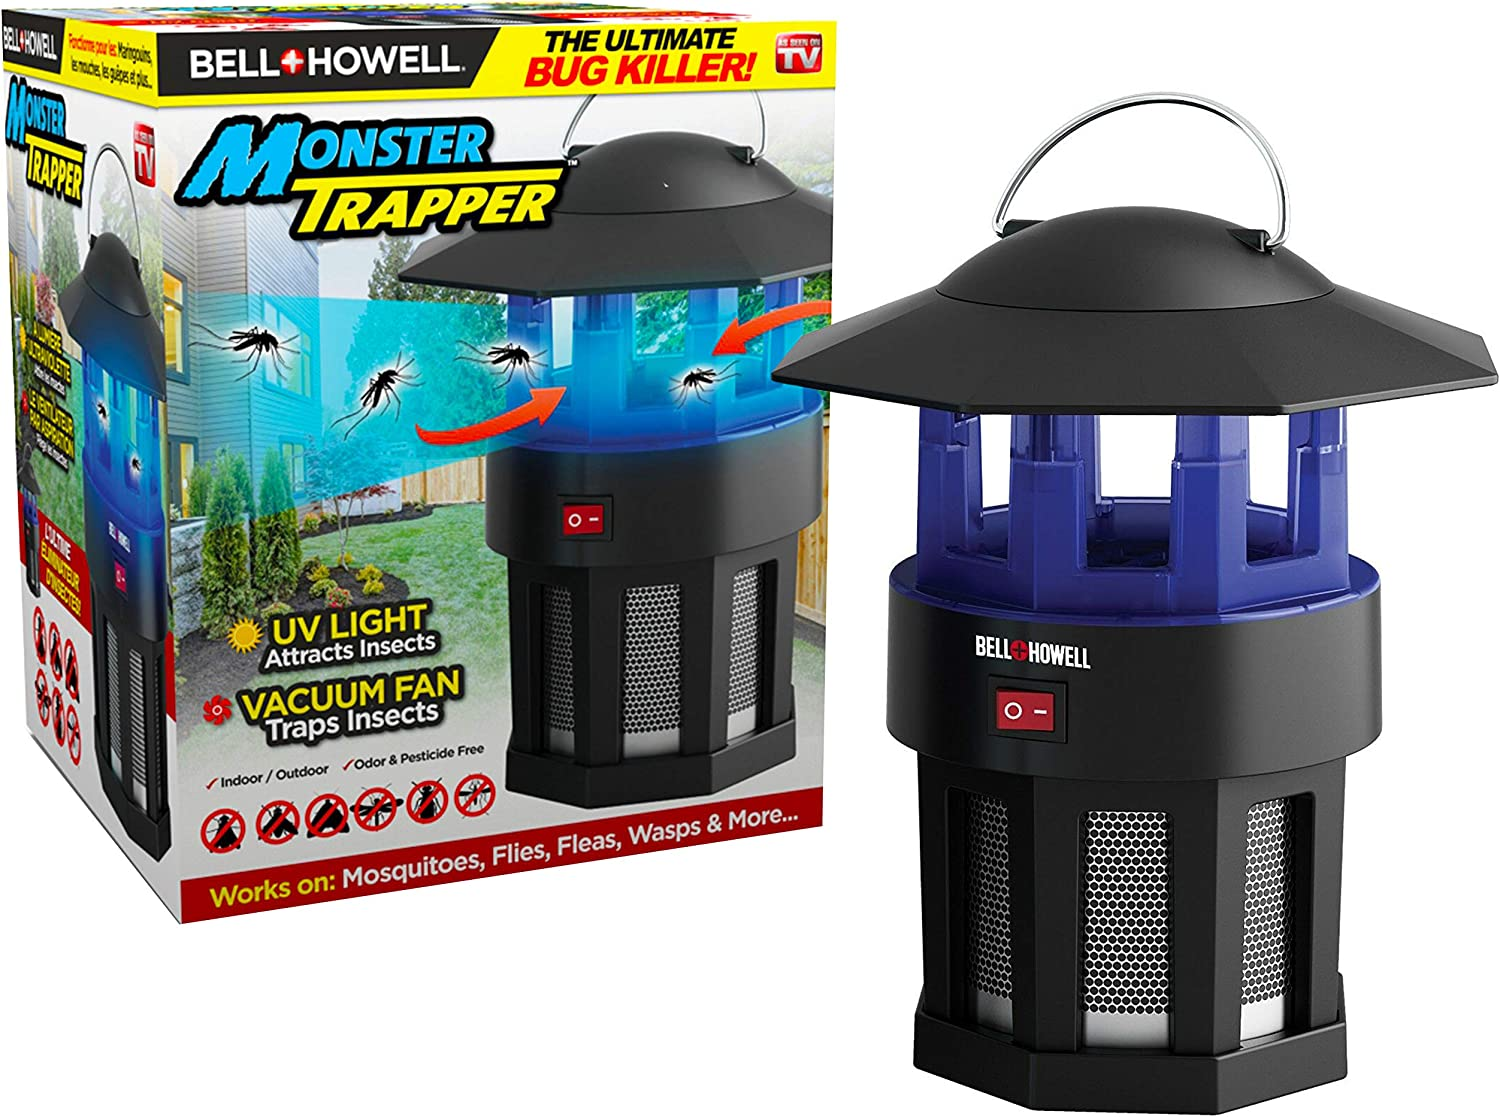 "Bell+Howell Monster Trapper 1923 Vacuum-Based Trap for Bugs and Insects, No Zapping Noise, Whisper-Quiet, 100% Chemical-Free, Pest Killer As Seen On TV, 8.5"" x 7.5"""